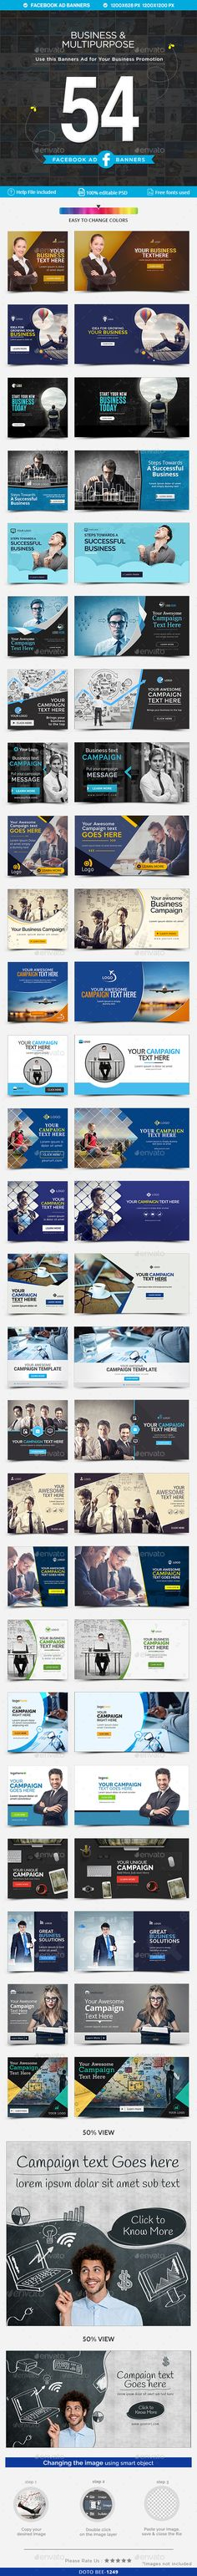 Facebook Ad Banners - 27 Designs Templates PSD. Download here: http://graphicriver.net/item/facebook-ad-banners-27-designs/15639164?ref=ksioks